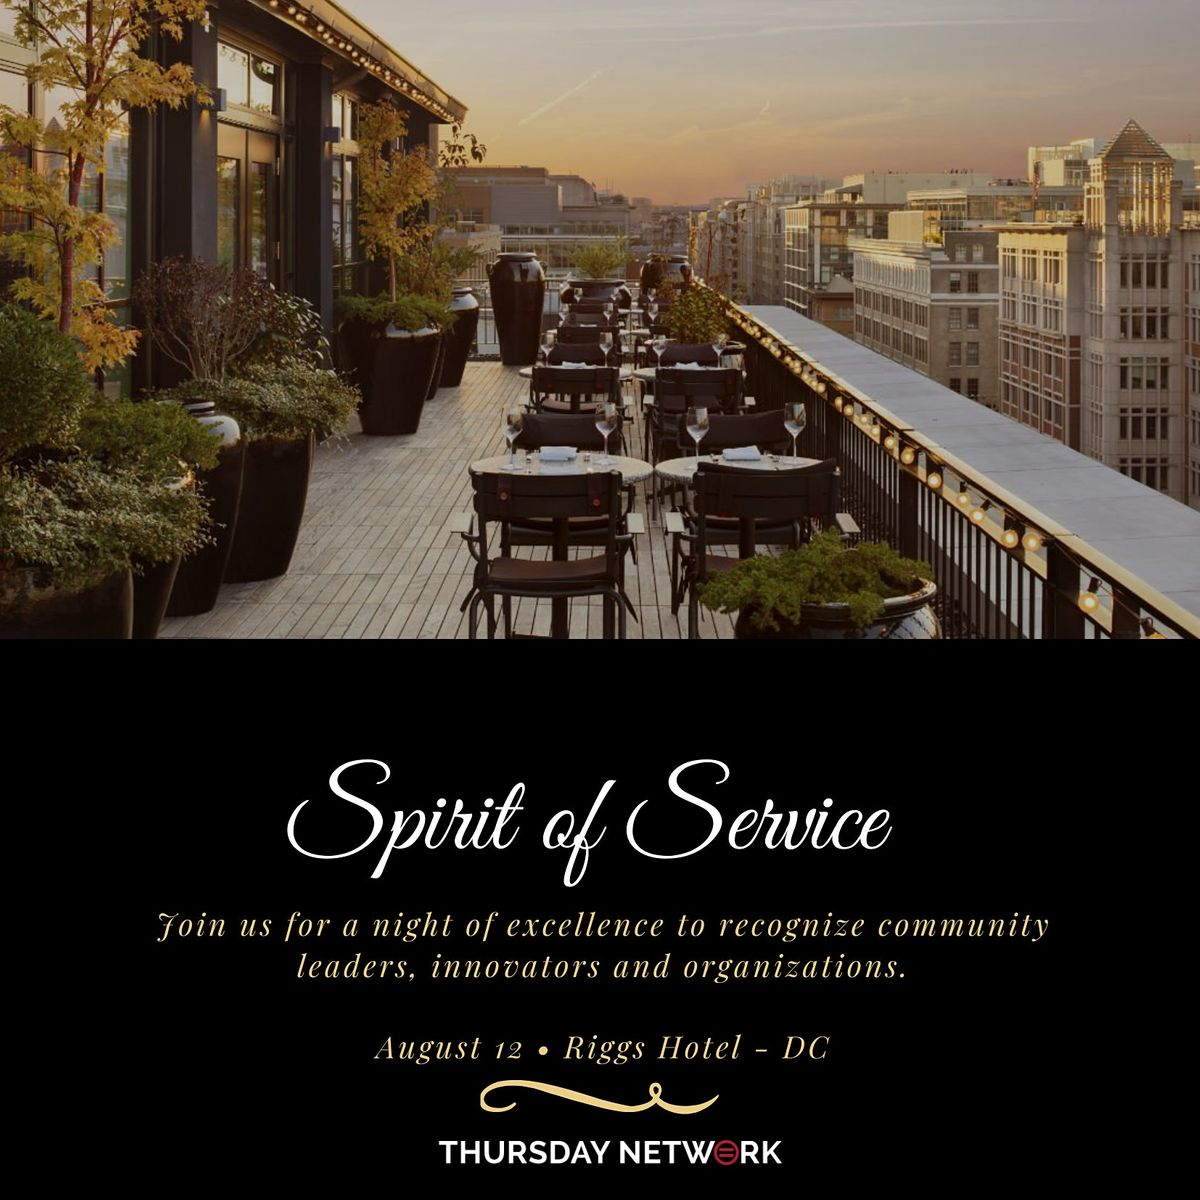 **SOLD OUT** 2021 Thursday Network - Spirit of Service Awards Ceremony